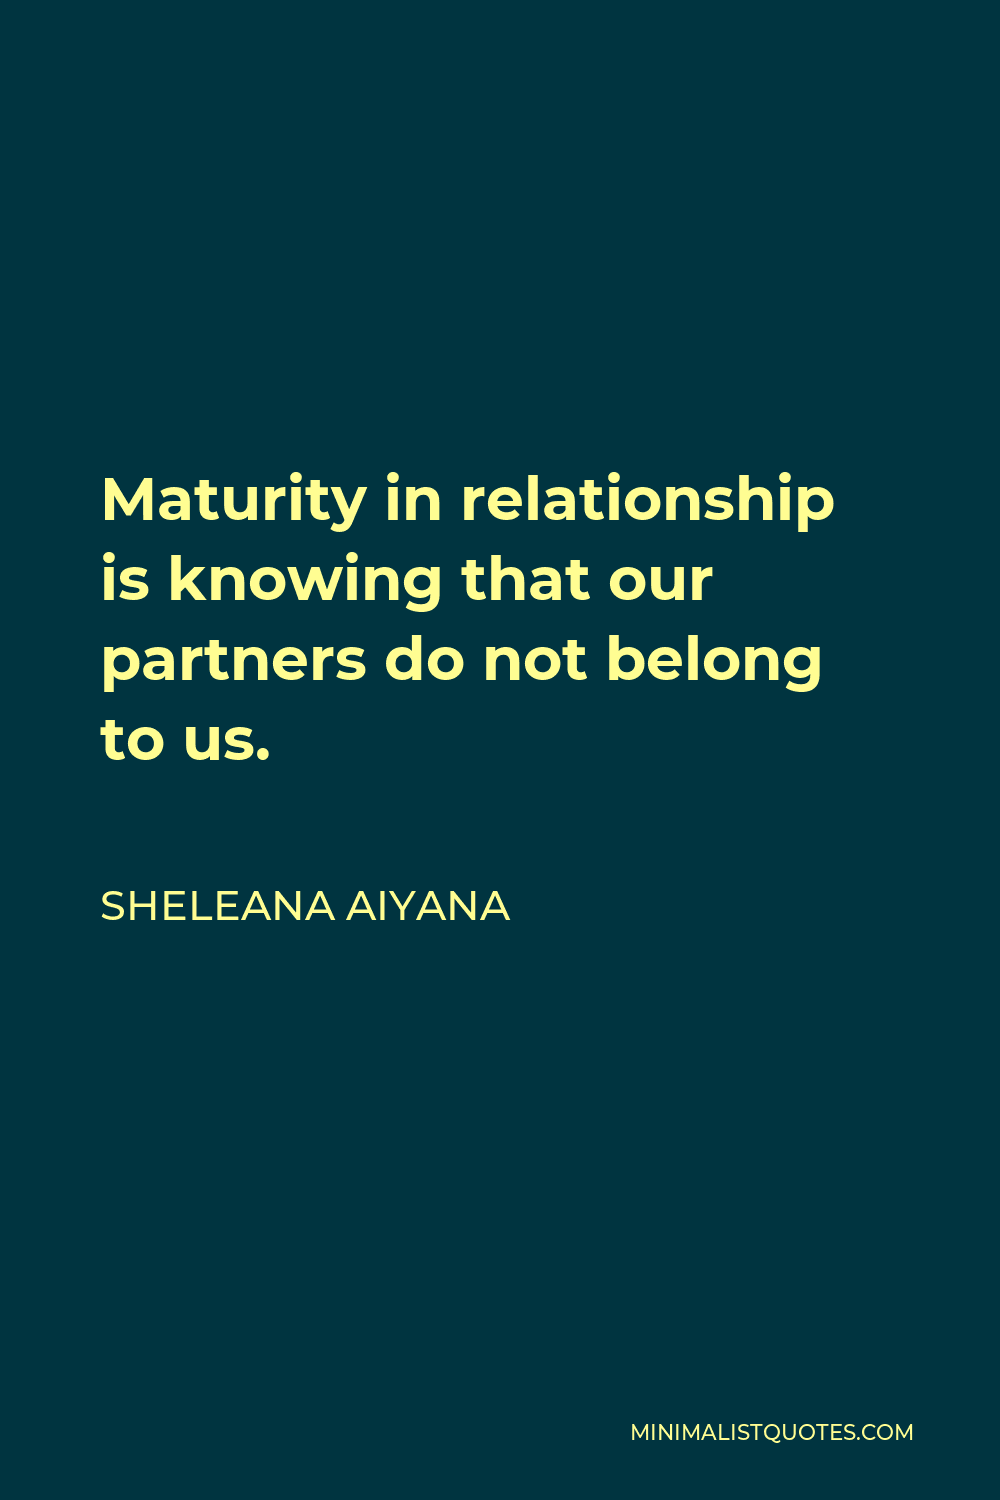 Sheleana Aiyana Quote - Maturity in relationship is knowing that our partners do not belong to us.